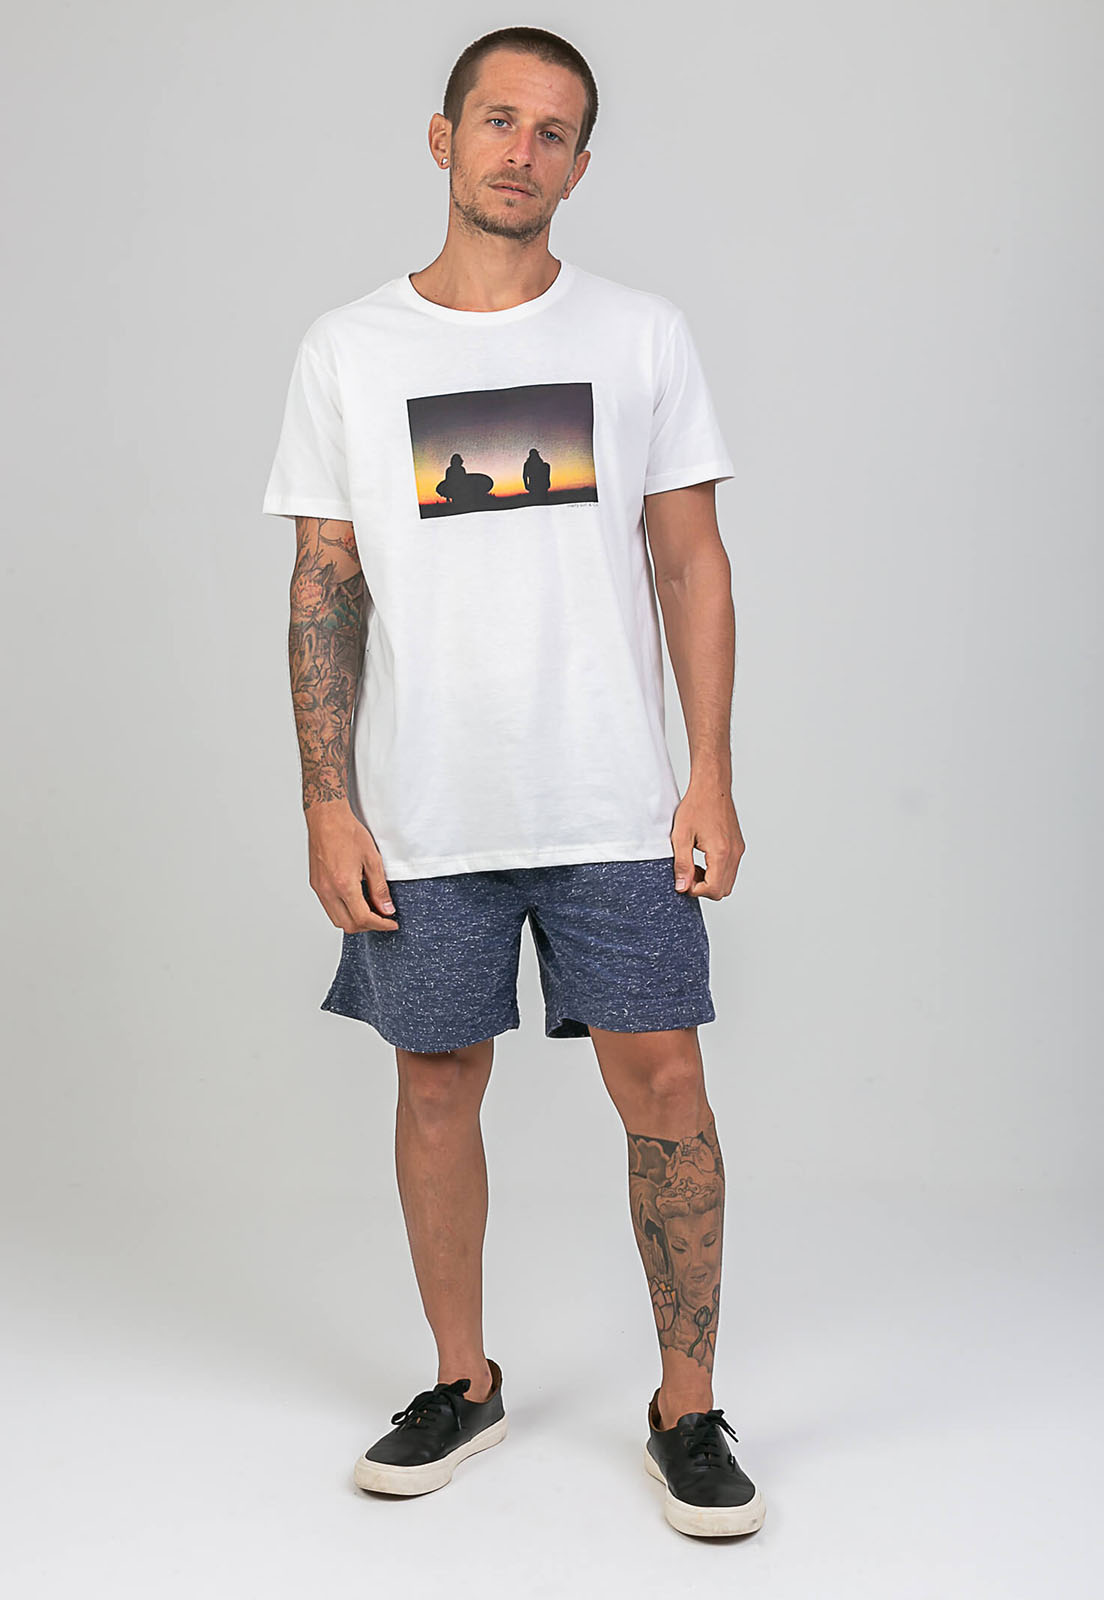 T-Shirt The Way melty  - melty surf & Co.